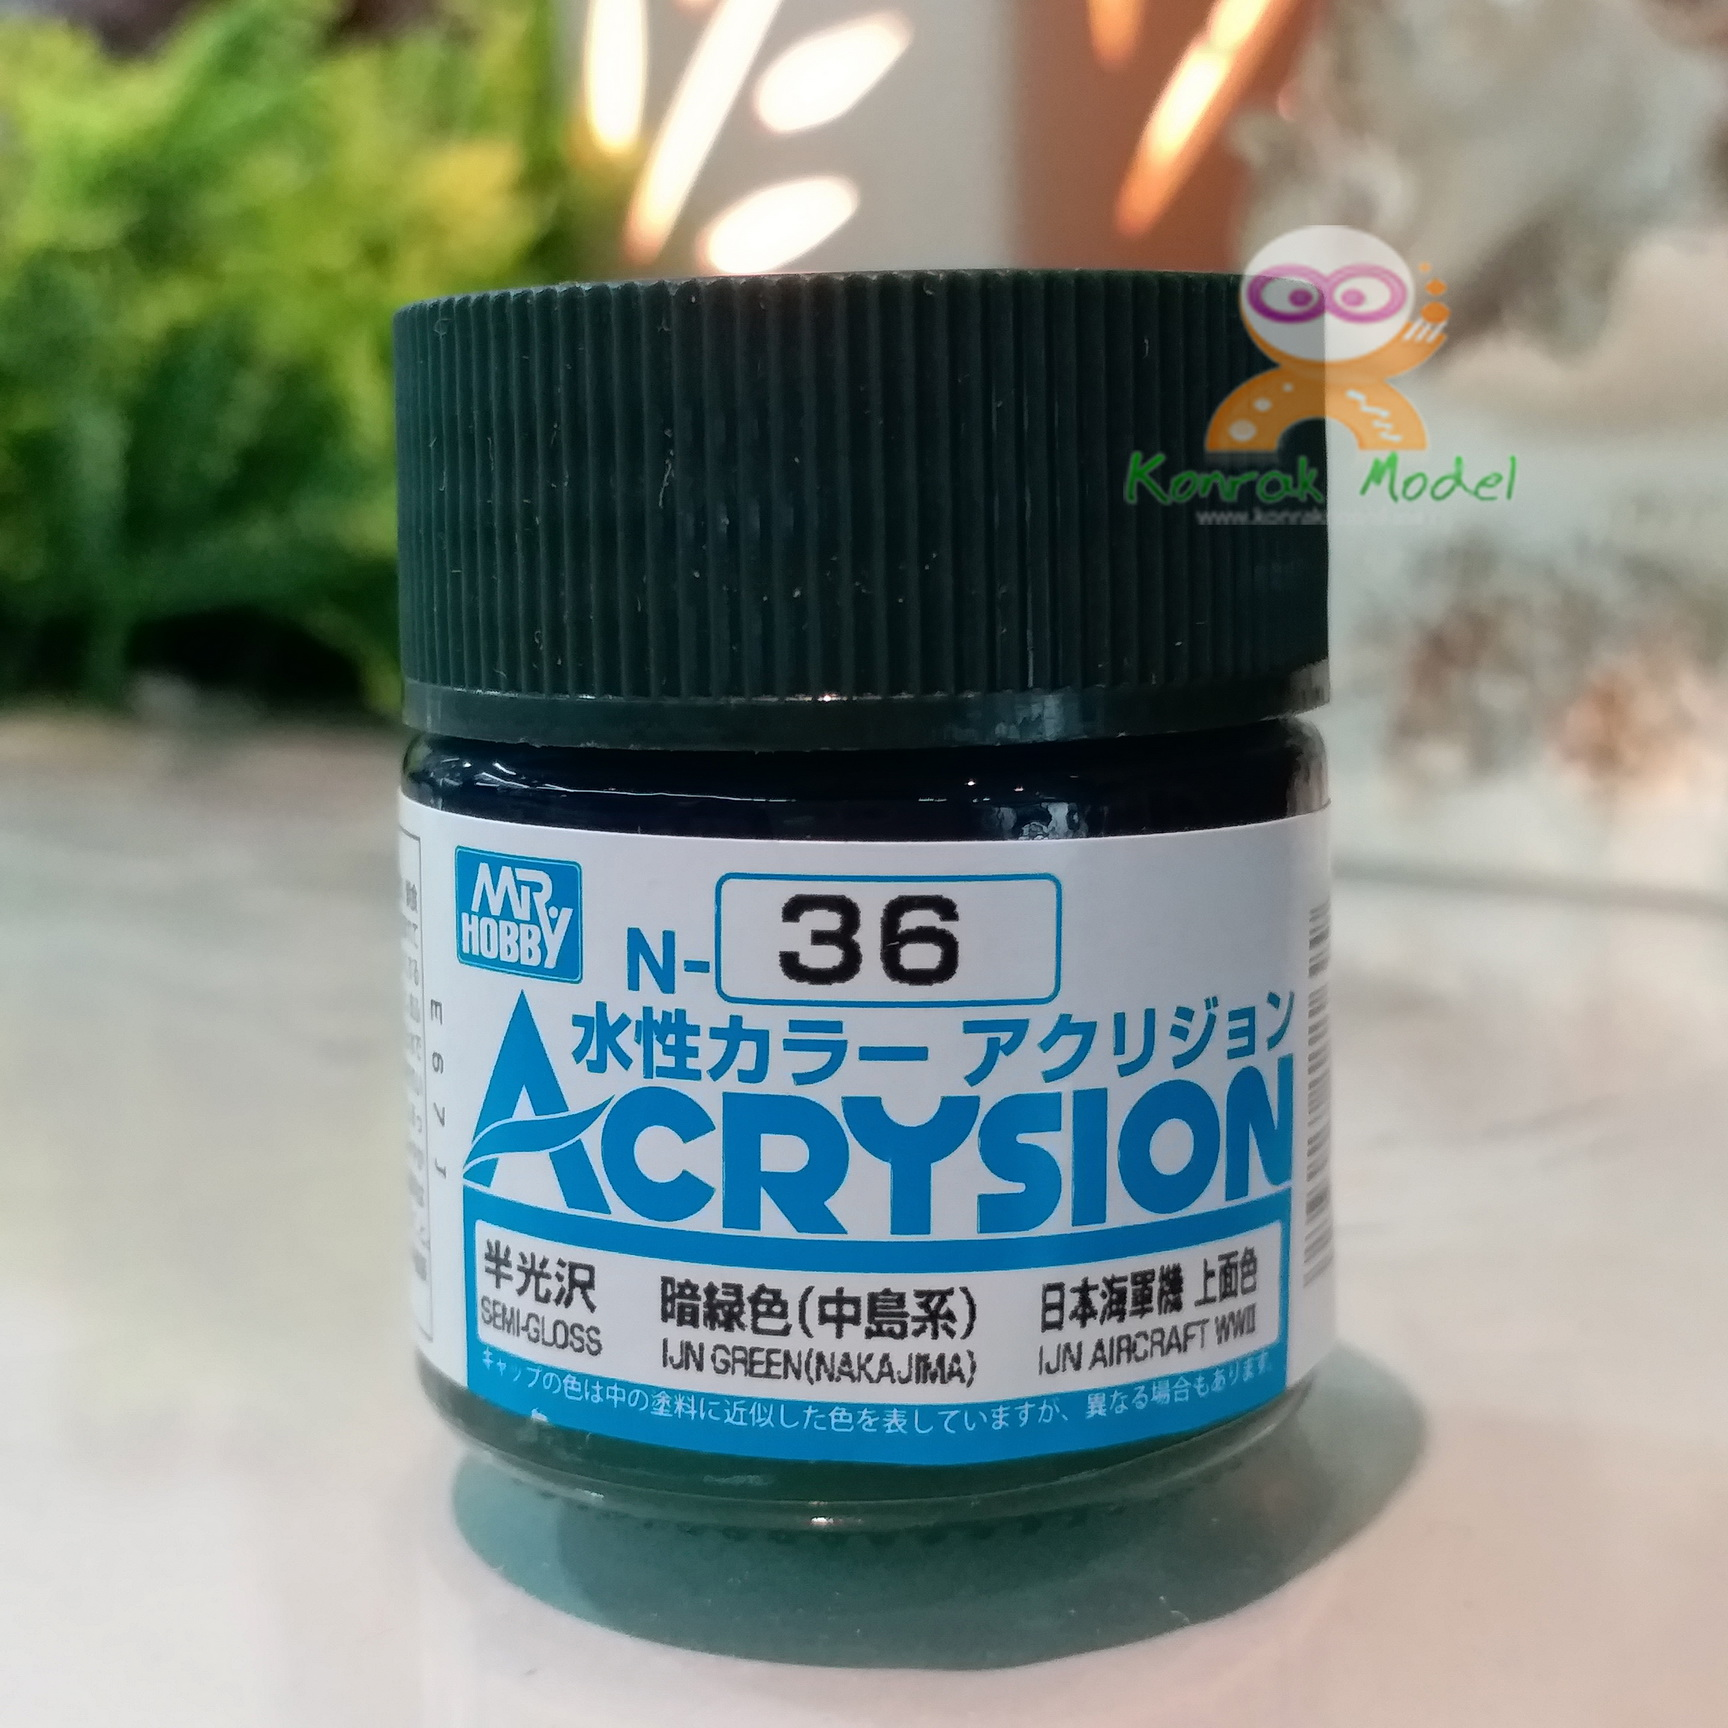 N36 IJN GREEN (NAKAJIMA) (Semi-Gloss) 10ml